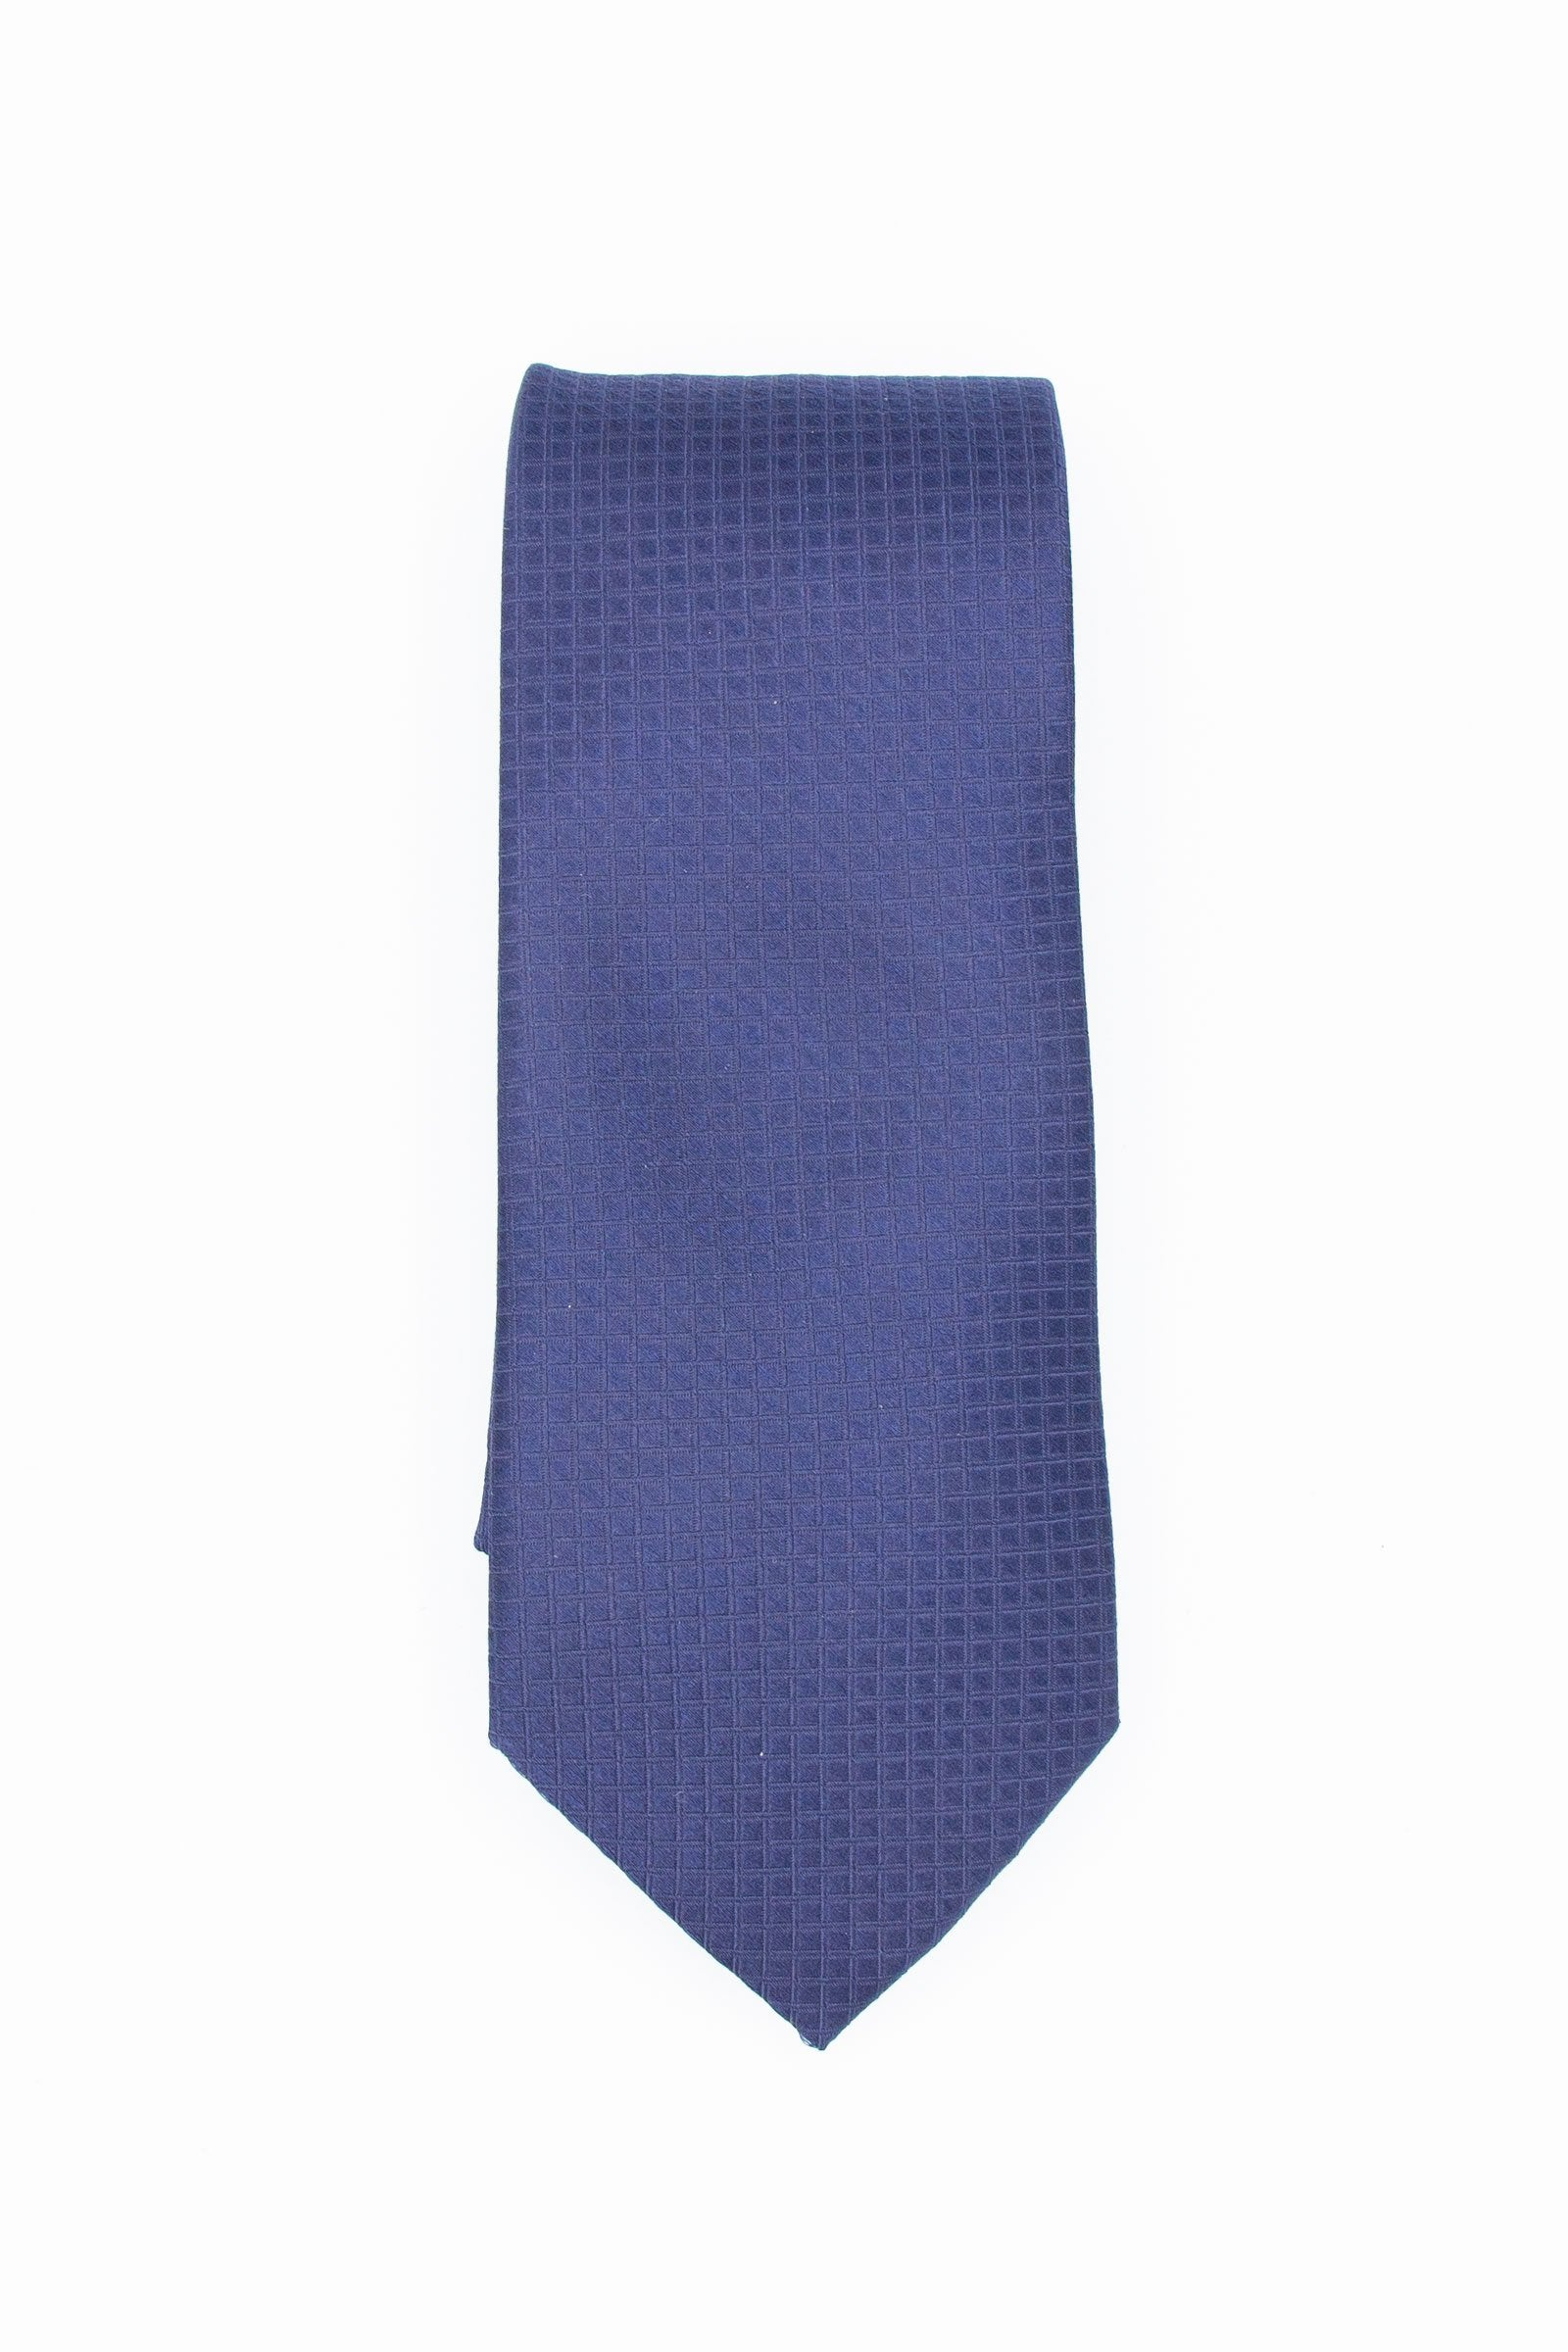 Blue Diamonds Men's Silk Tie